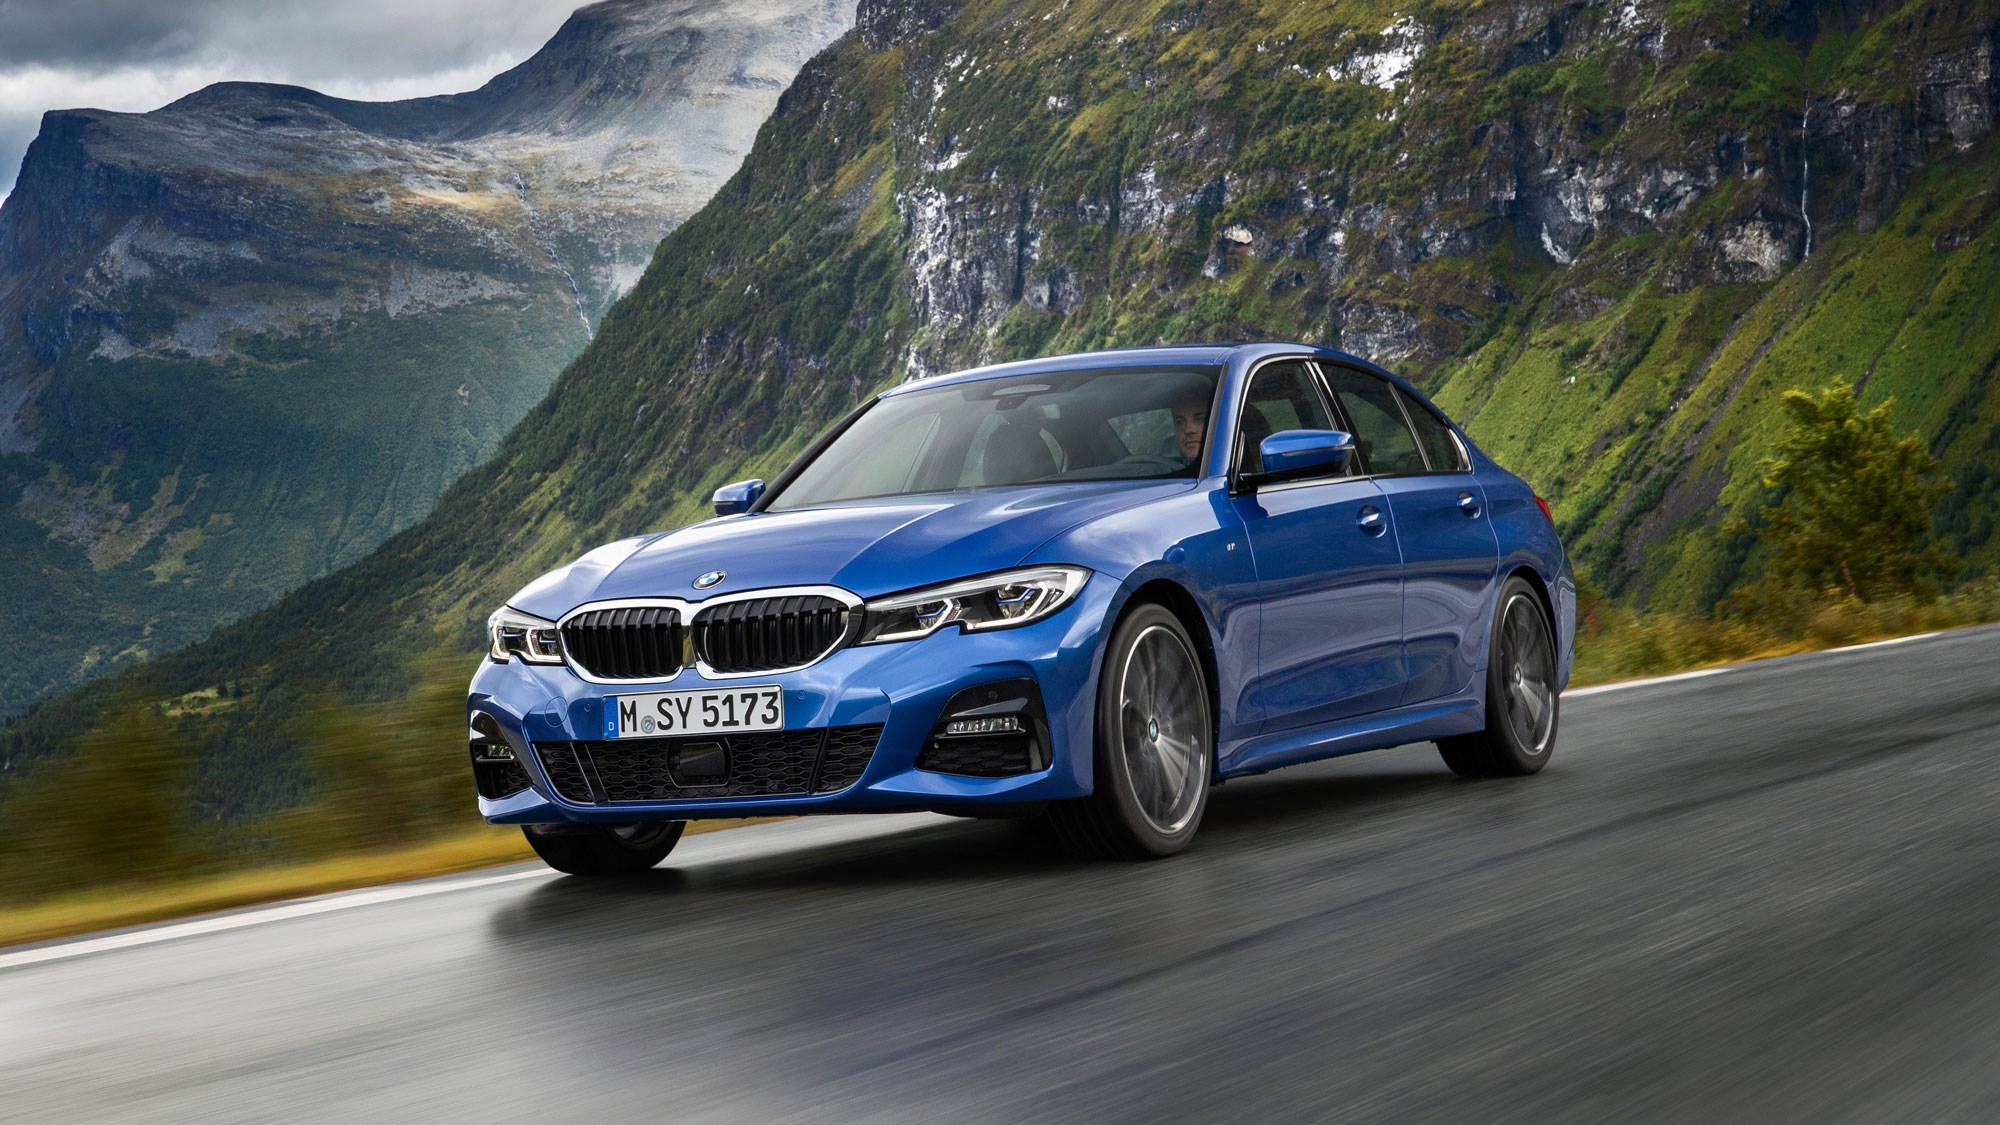 new bmw 3 series revealed g20 debuts in paris news archives uk. Black Bedroom Furniture Sets. Home Design Ideas